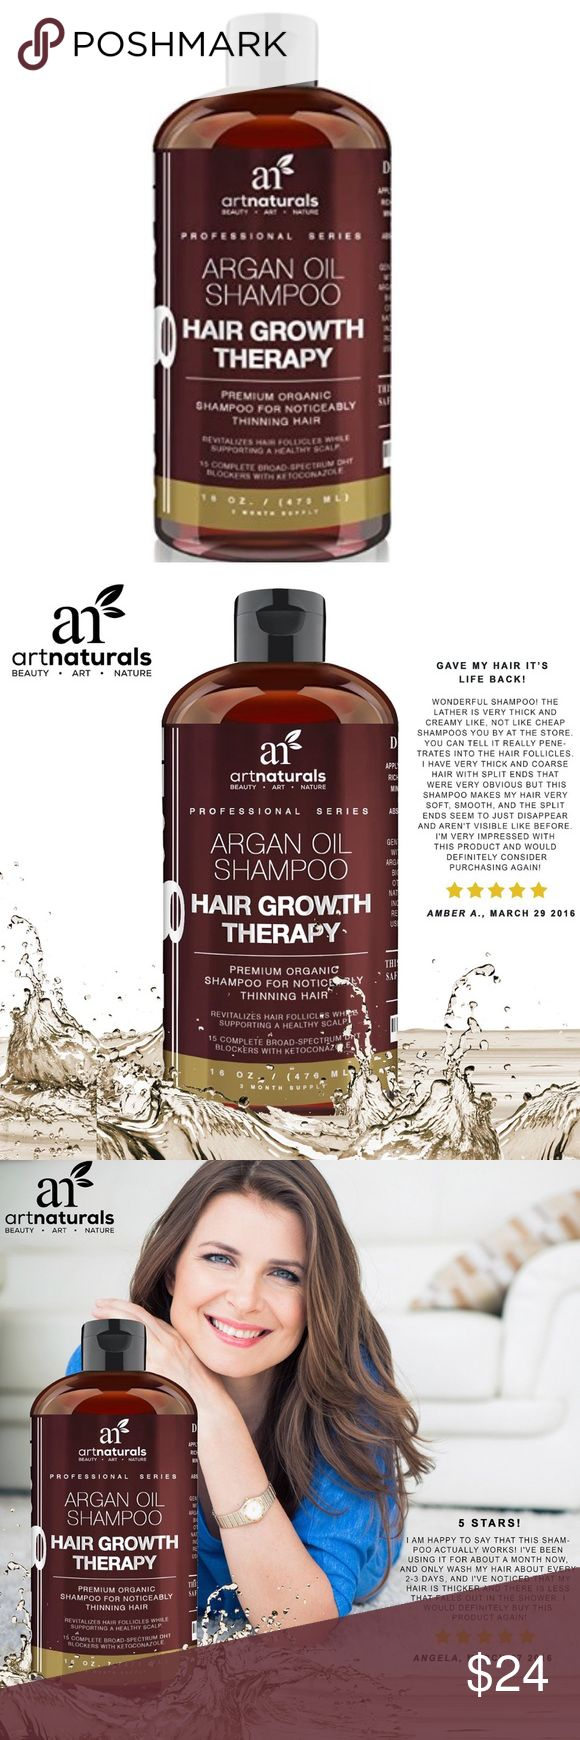 ✨NEW✨Hair Growth Shampoo w/Argan Oil ArtNaturals Art Naturals Organic Argan Oil Hair Loss Shampoo for Hair Regrowth 16 Oz - Sulfate Free - Best Treatment for Hair Loss, Thinning & Aging - Product For Men & Women - Infused with Biotin - 2016 Edition Art Naturals Makeup